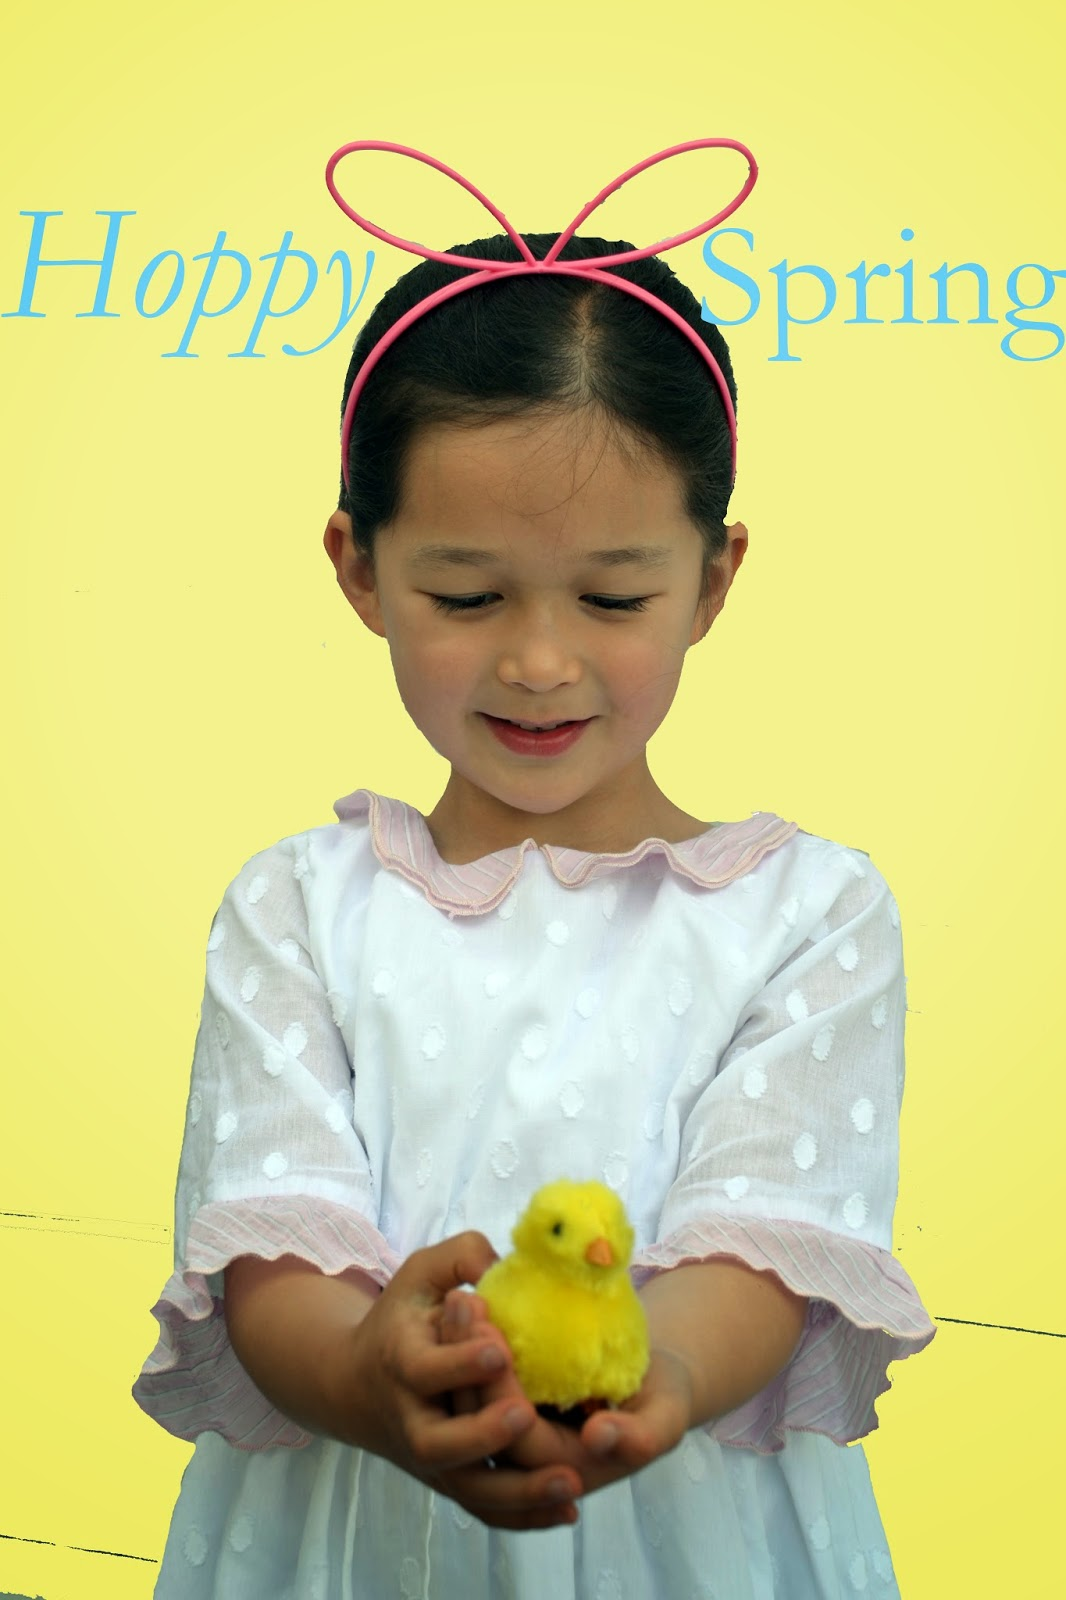 spring 2015, spring holiday dresses, easter holiday dresses, 5th grade graduation dress, SFMade, dress like a girl, adora dress, featured in Babiekins Magazine